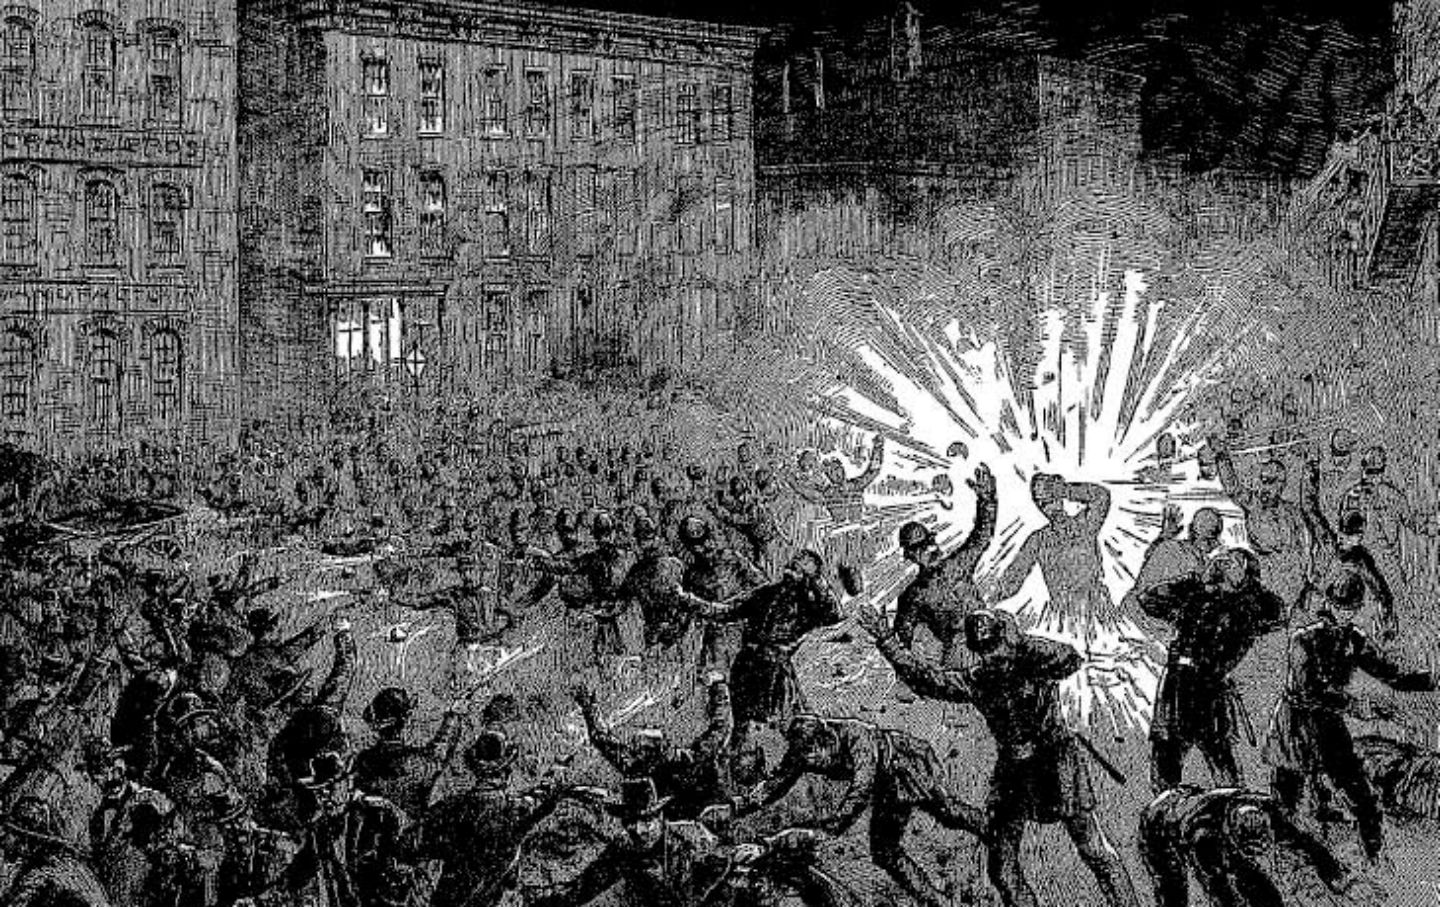 an overview of the haymarket square riot in chicago Get this from a library the chicago haymarket riot : anarchy on trial [bernard r kogan paul avrich collection (library of congress)] -- contains primary sources on the haymarket square riot, chicago, 1886 as well as the trial.